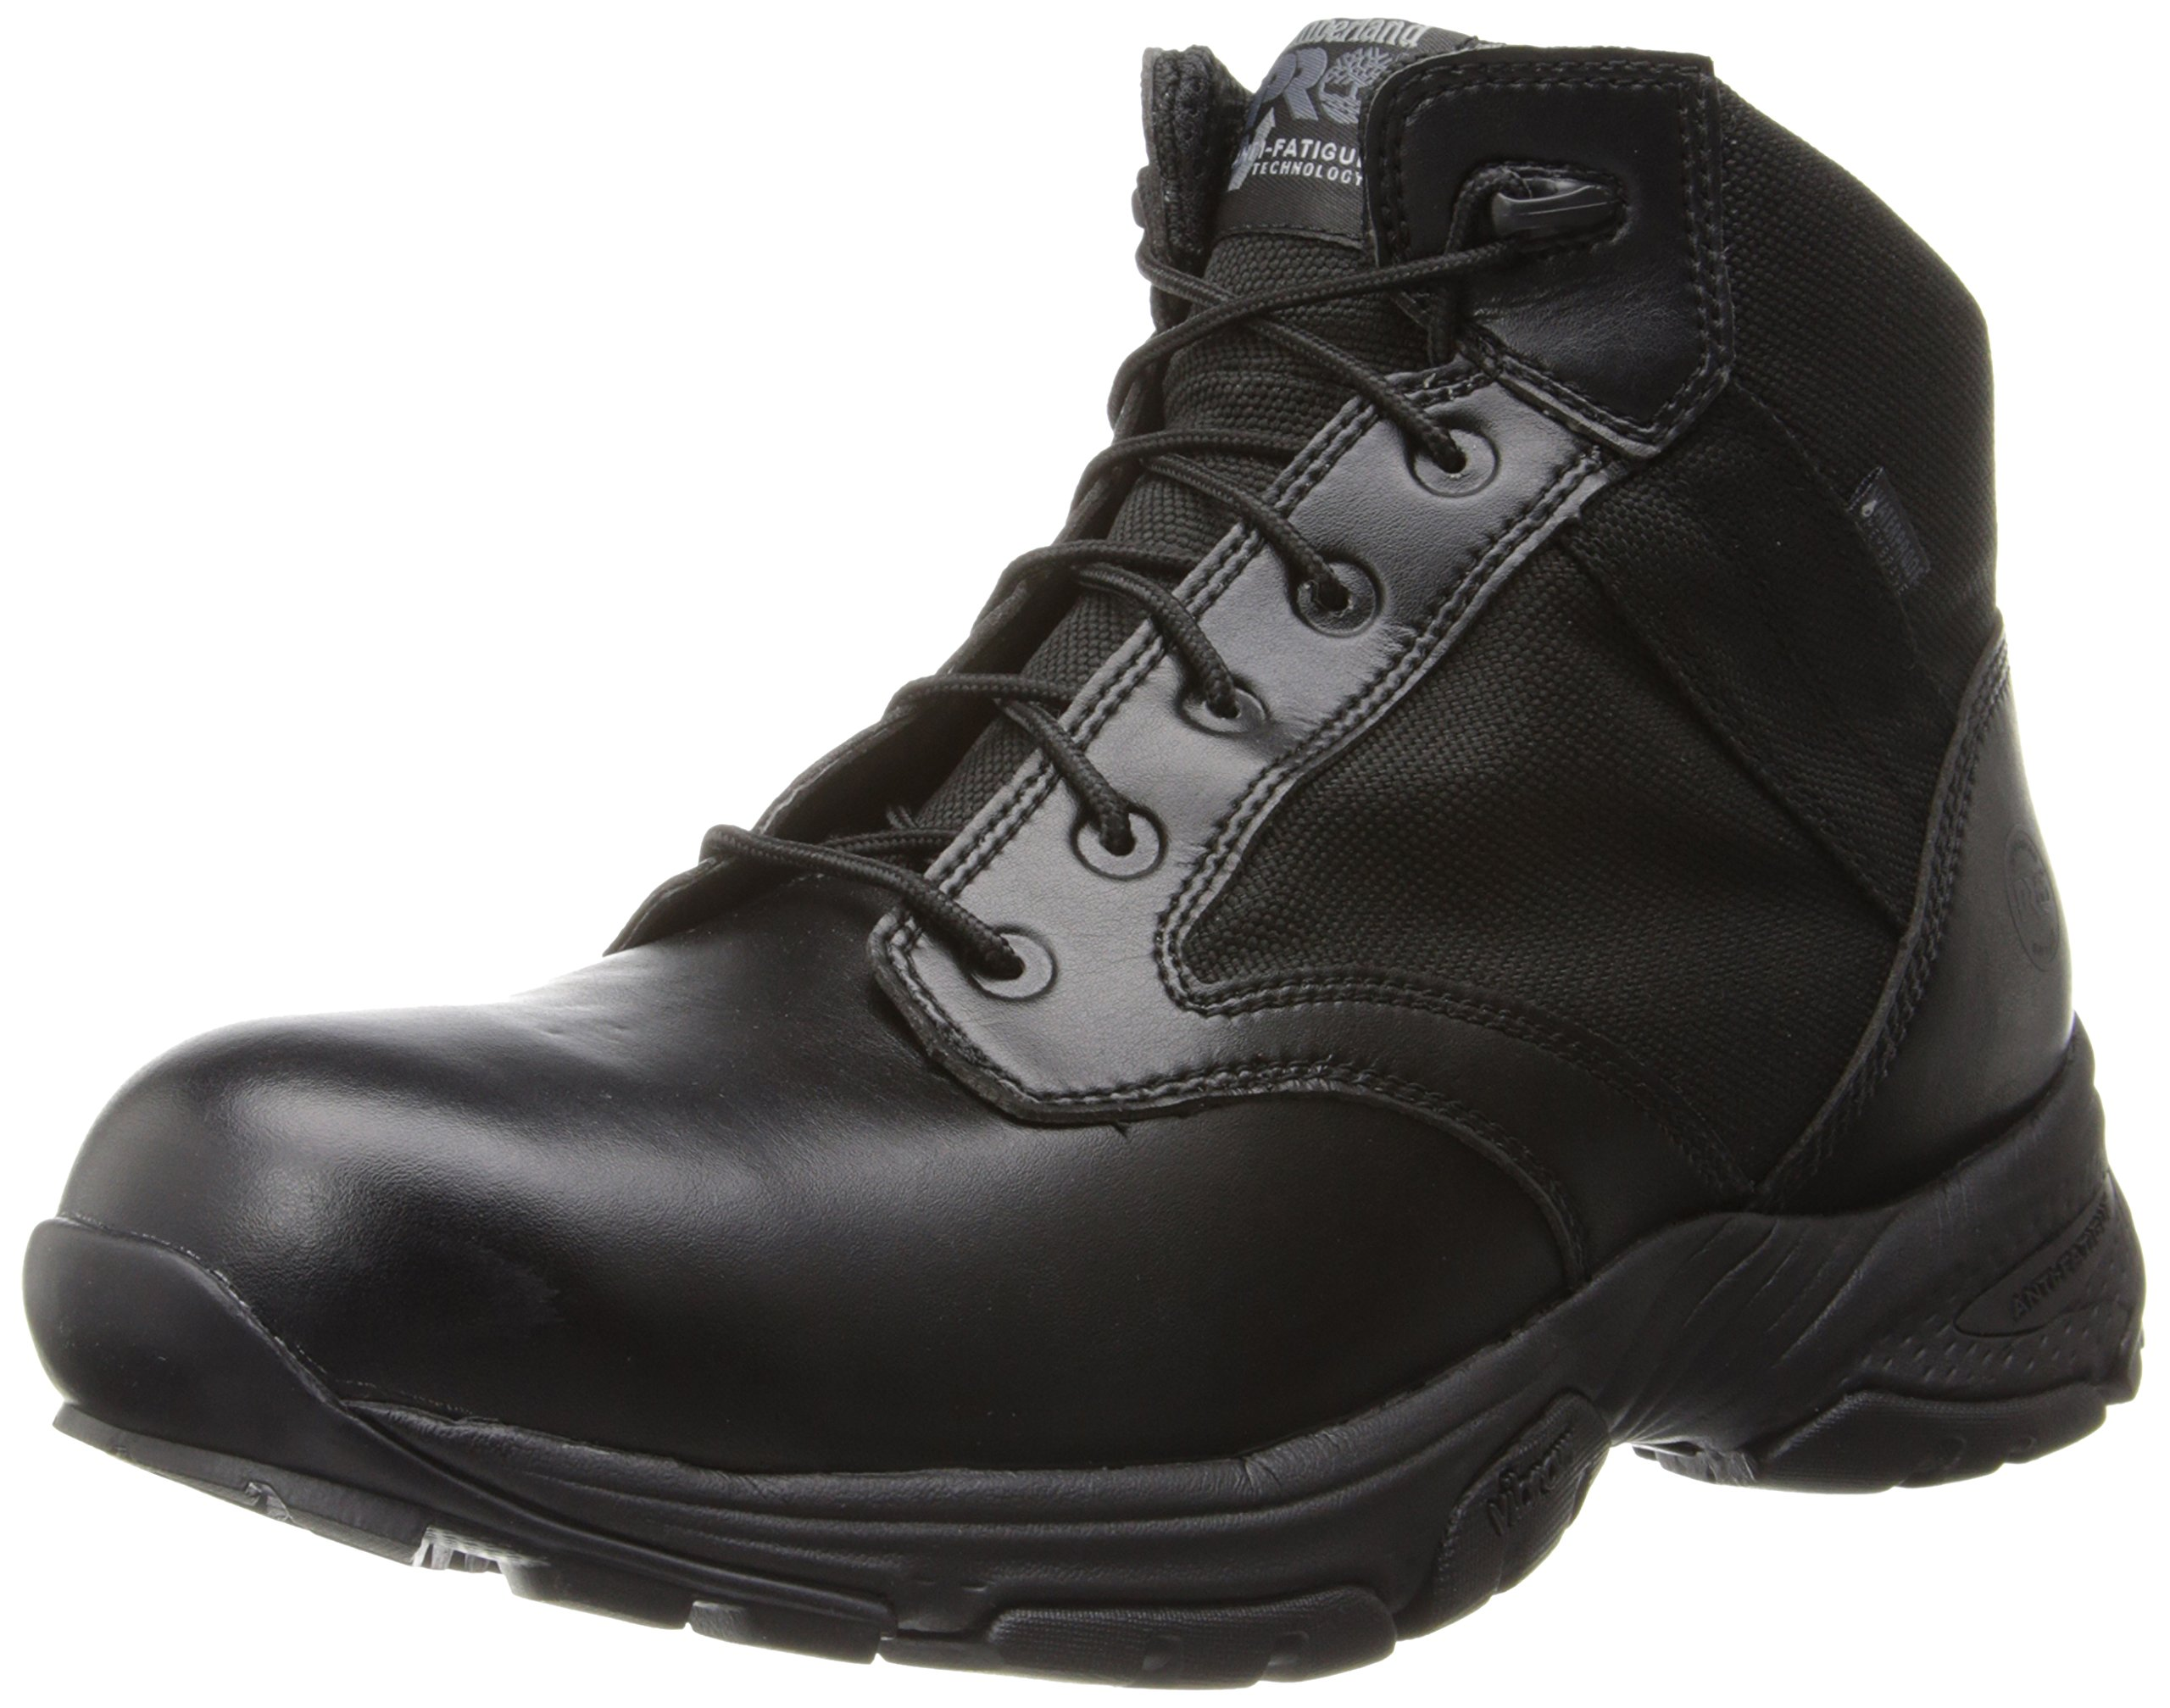 Timberland PRO Men's 5 Inch Valor Soft Toe Waterproof Duty Boot,Black Smooth With Textile,11 M US